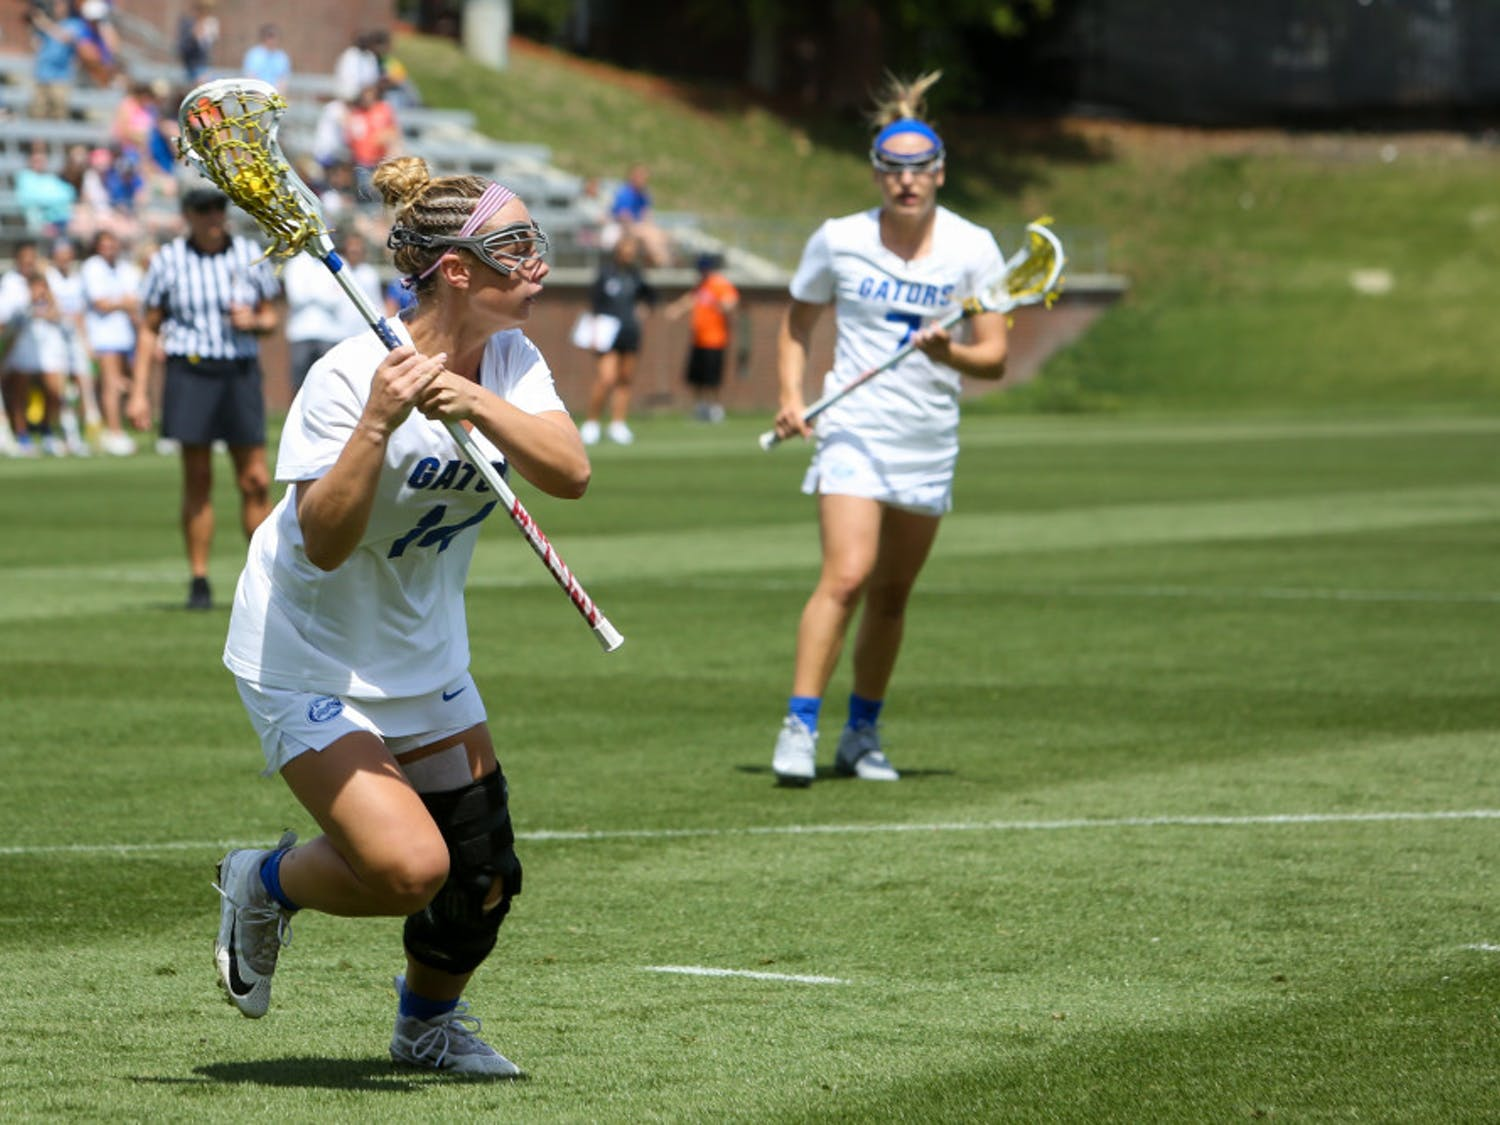 Junior attacker Lindsey Ronbeck returned from an injury in Florida's 21-8 win over UConn.